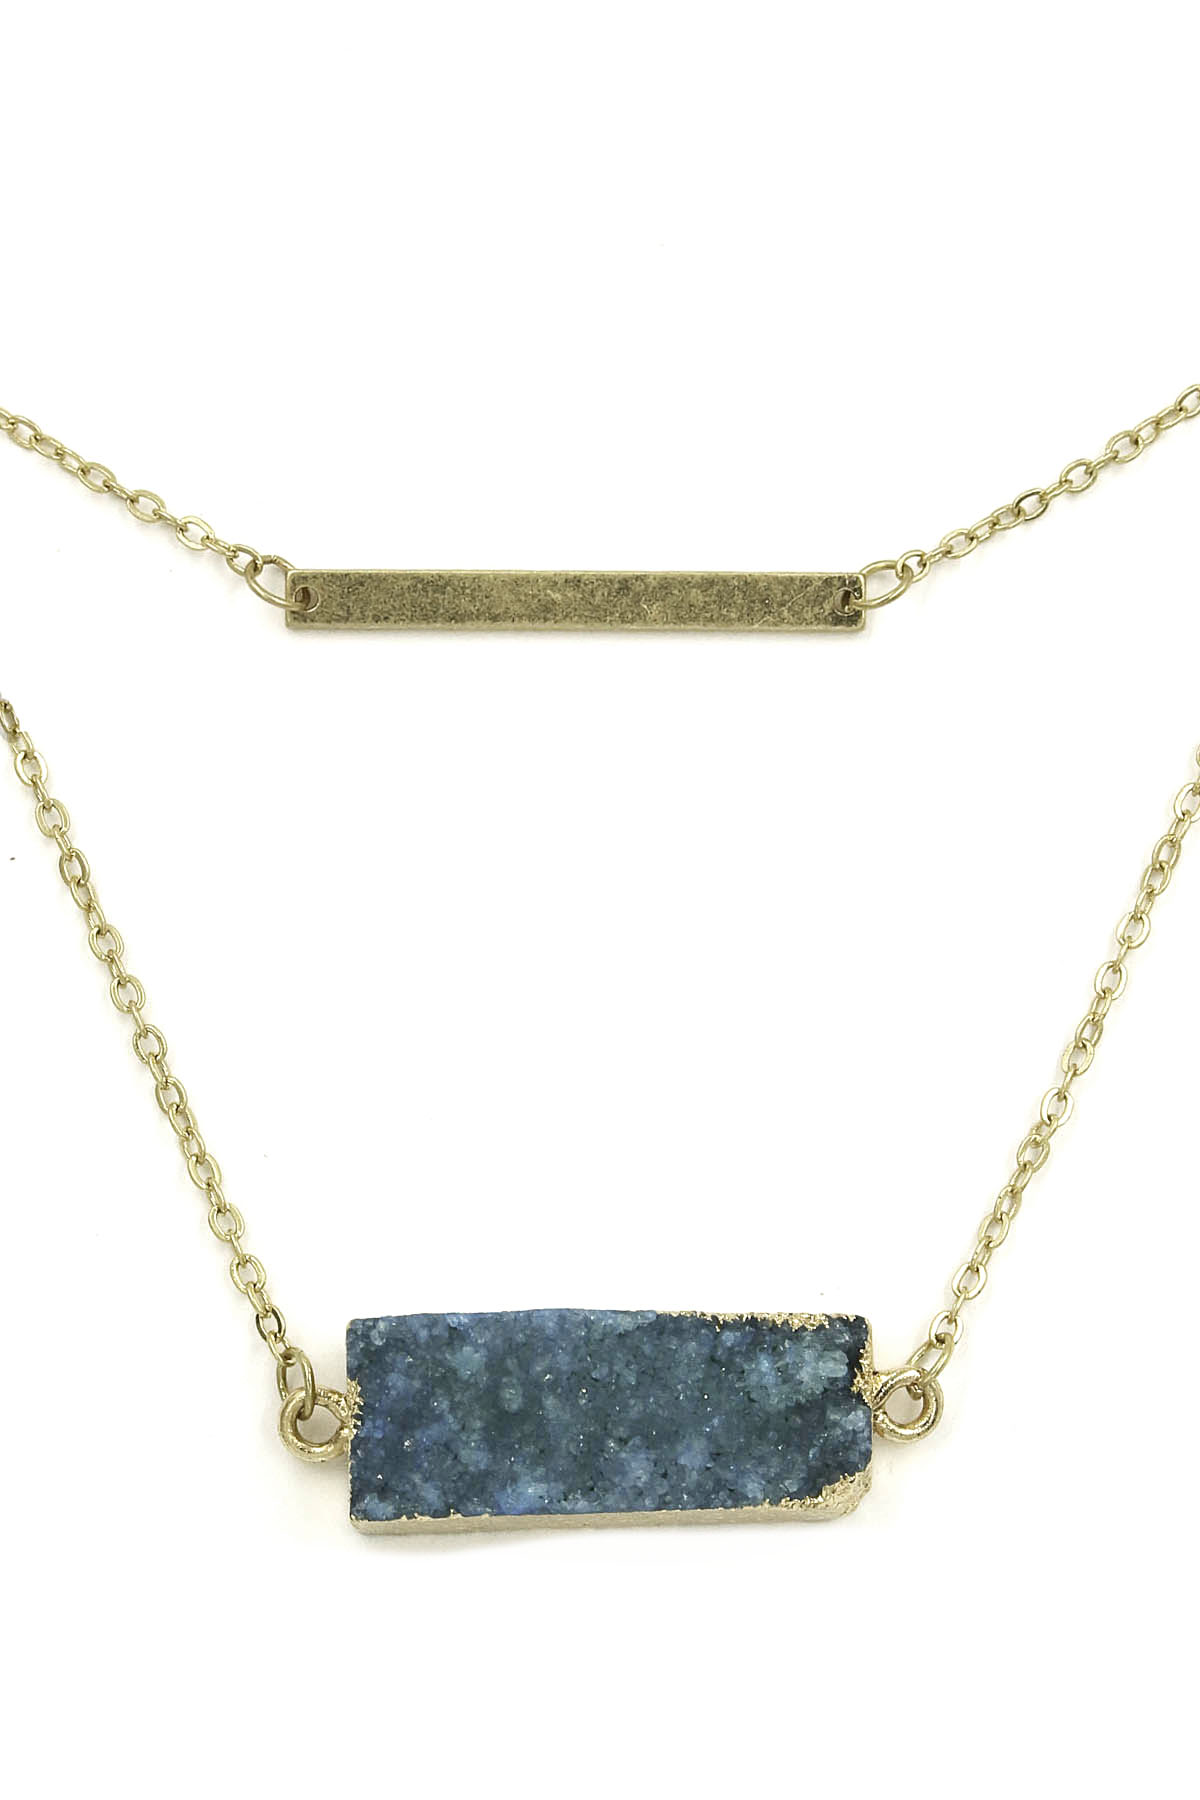 Metal Bar/Rectangular Druzy Stone Necklace - Necklaces